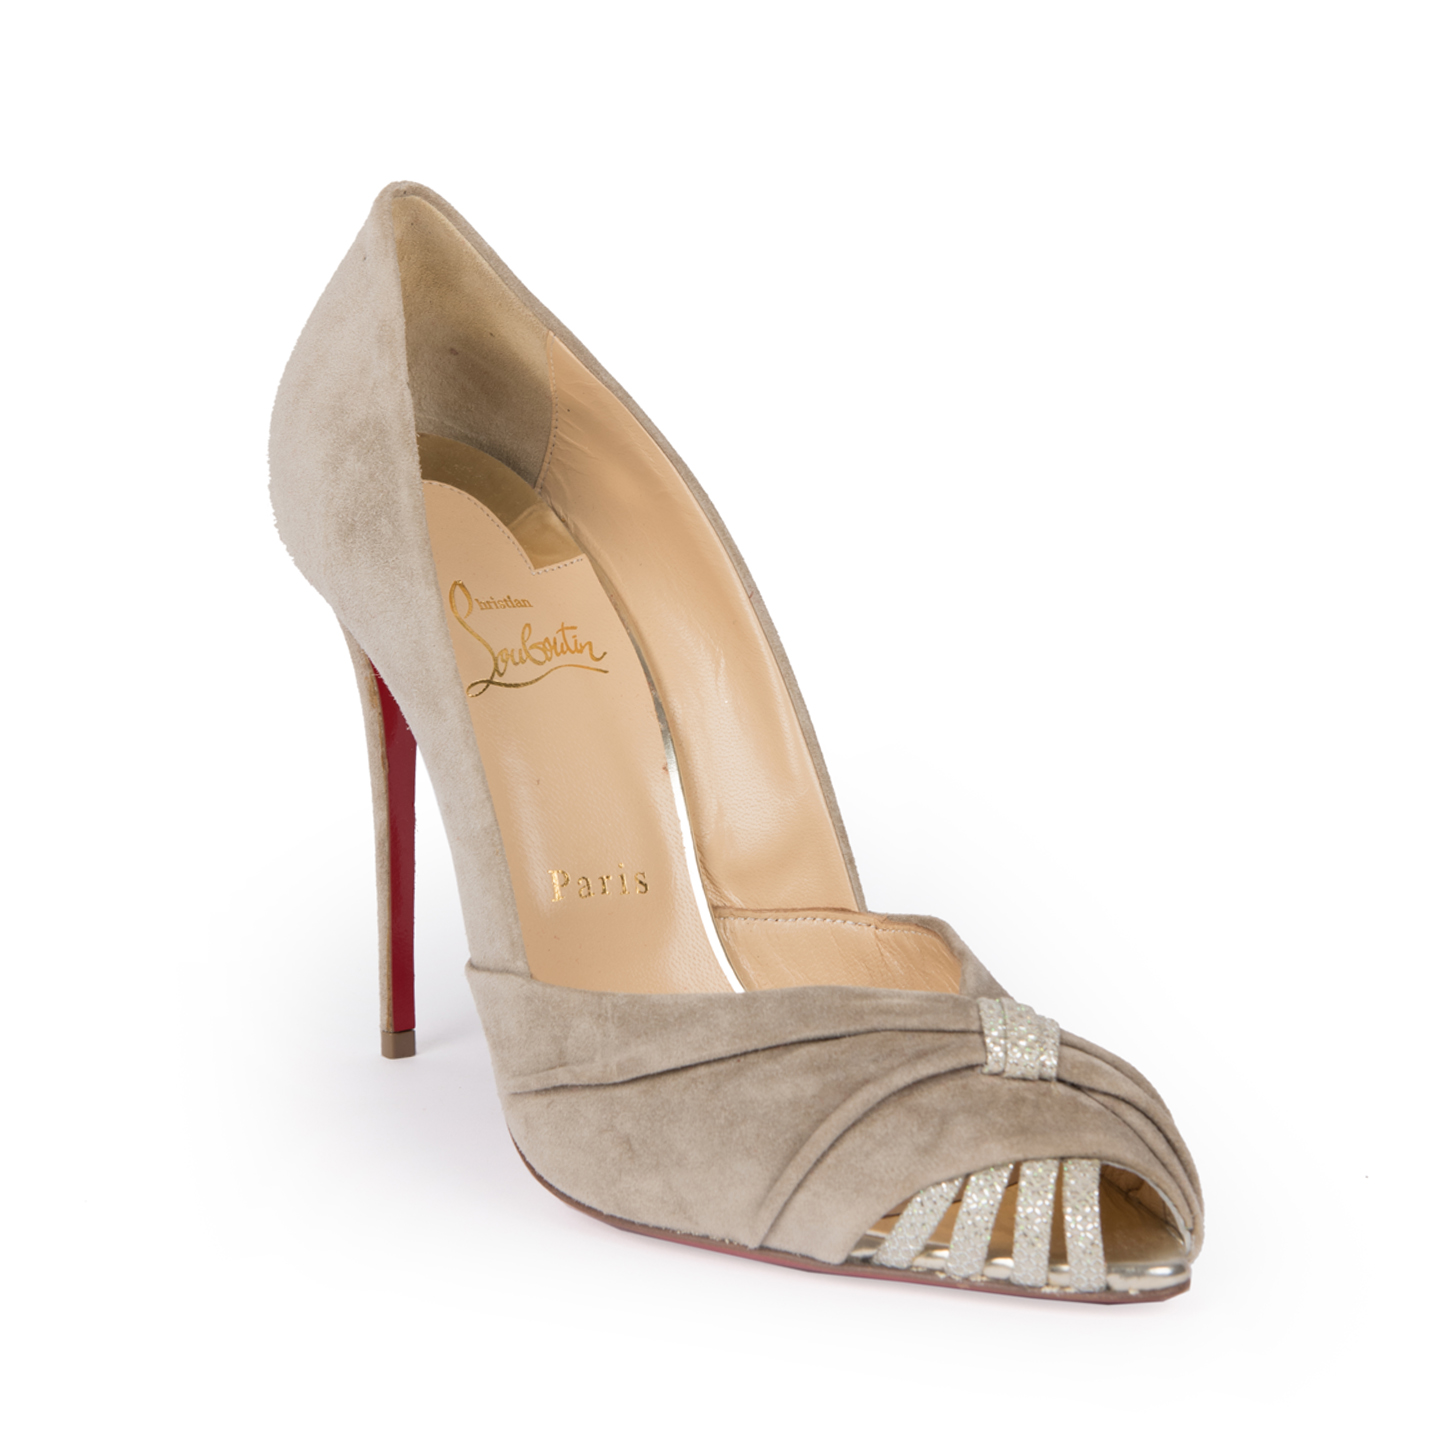 Christian Louboutin Suede Peep-Toe Sandals